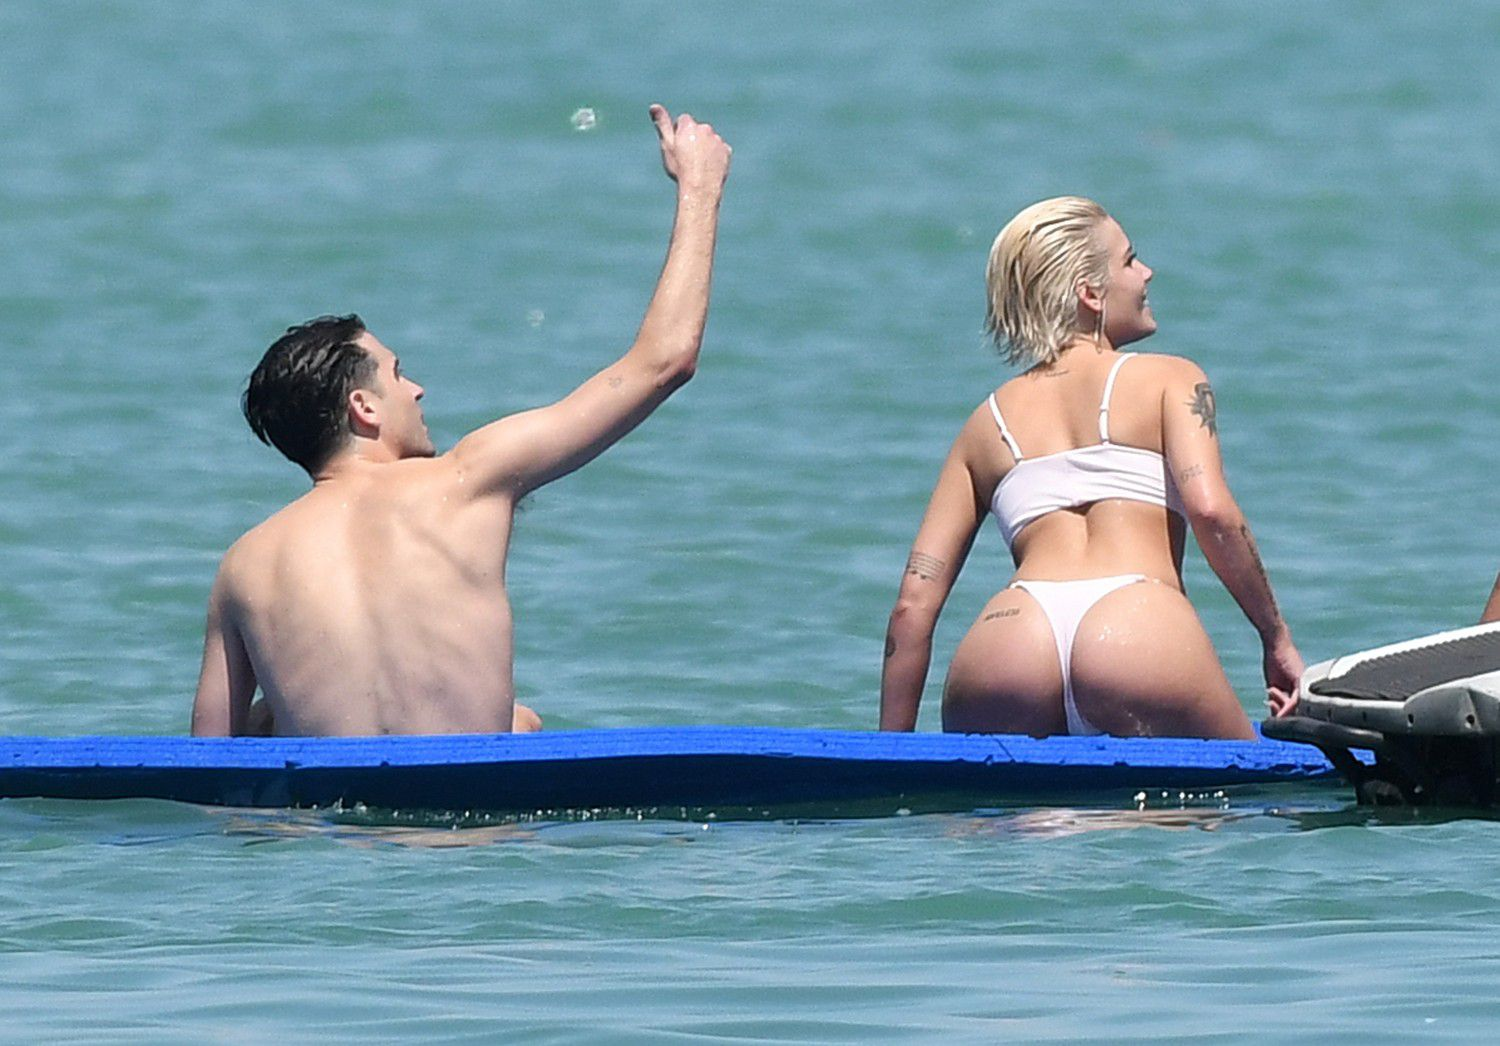 halsey-wearing-a-white-thong-bikini-on-a-yacht-in-miami-8887